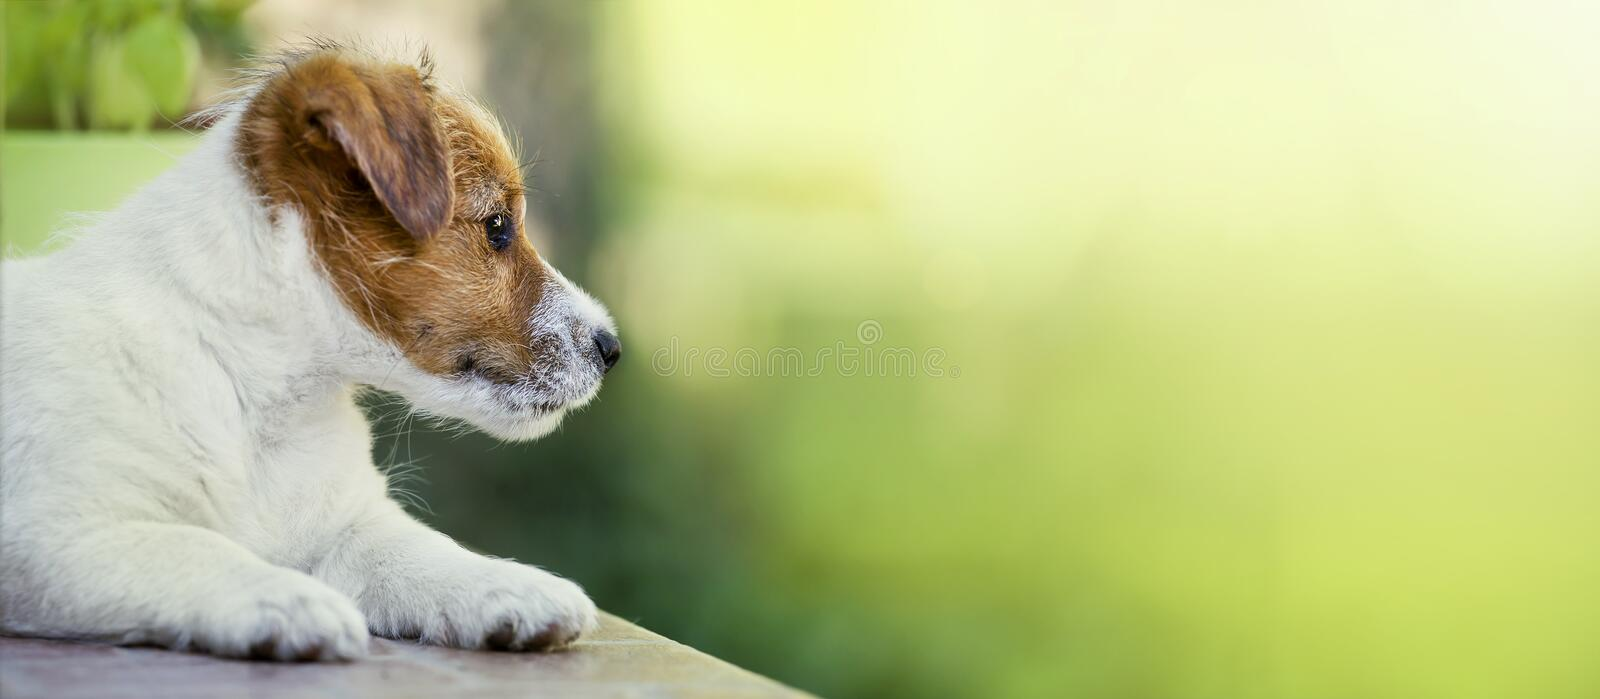 Cute dog puppy thinking - web banner idea royalty free stock photos